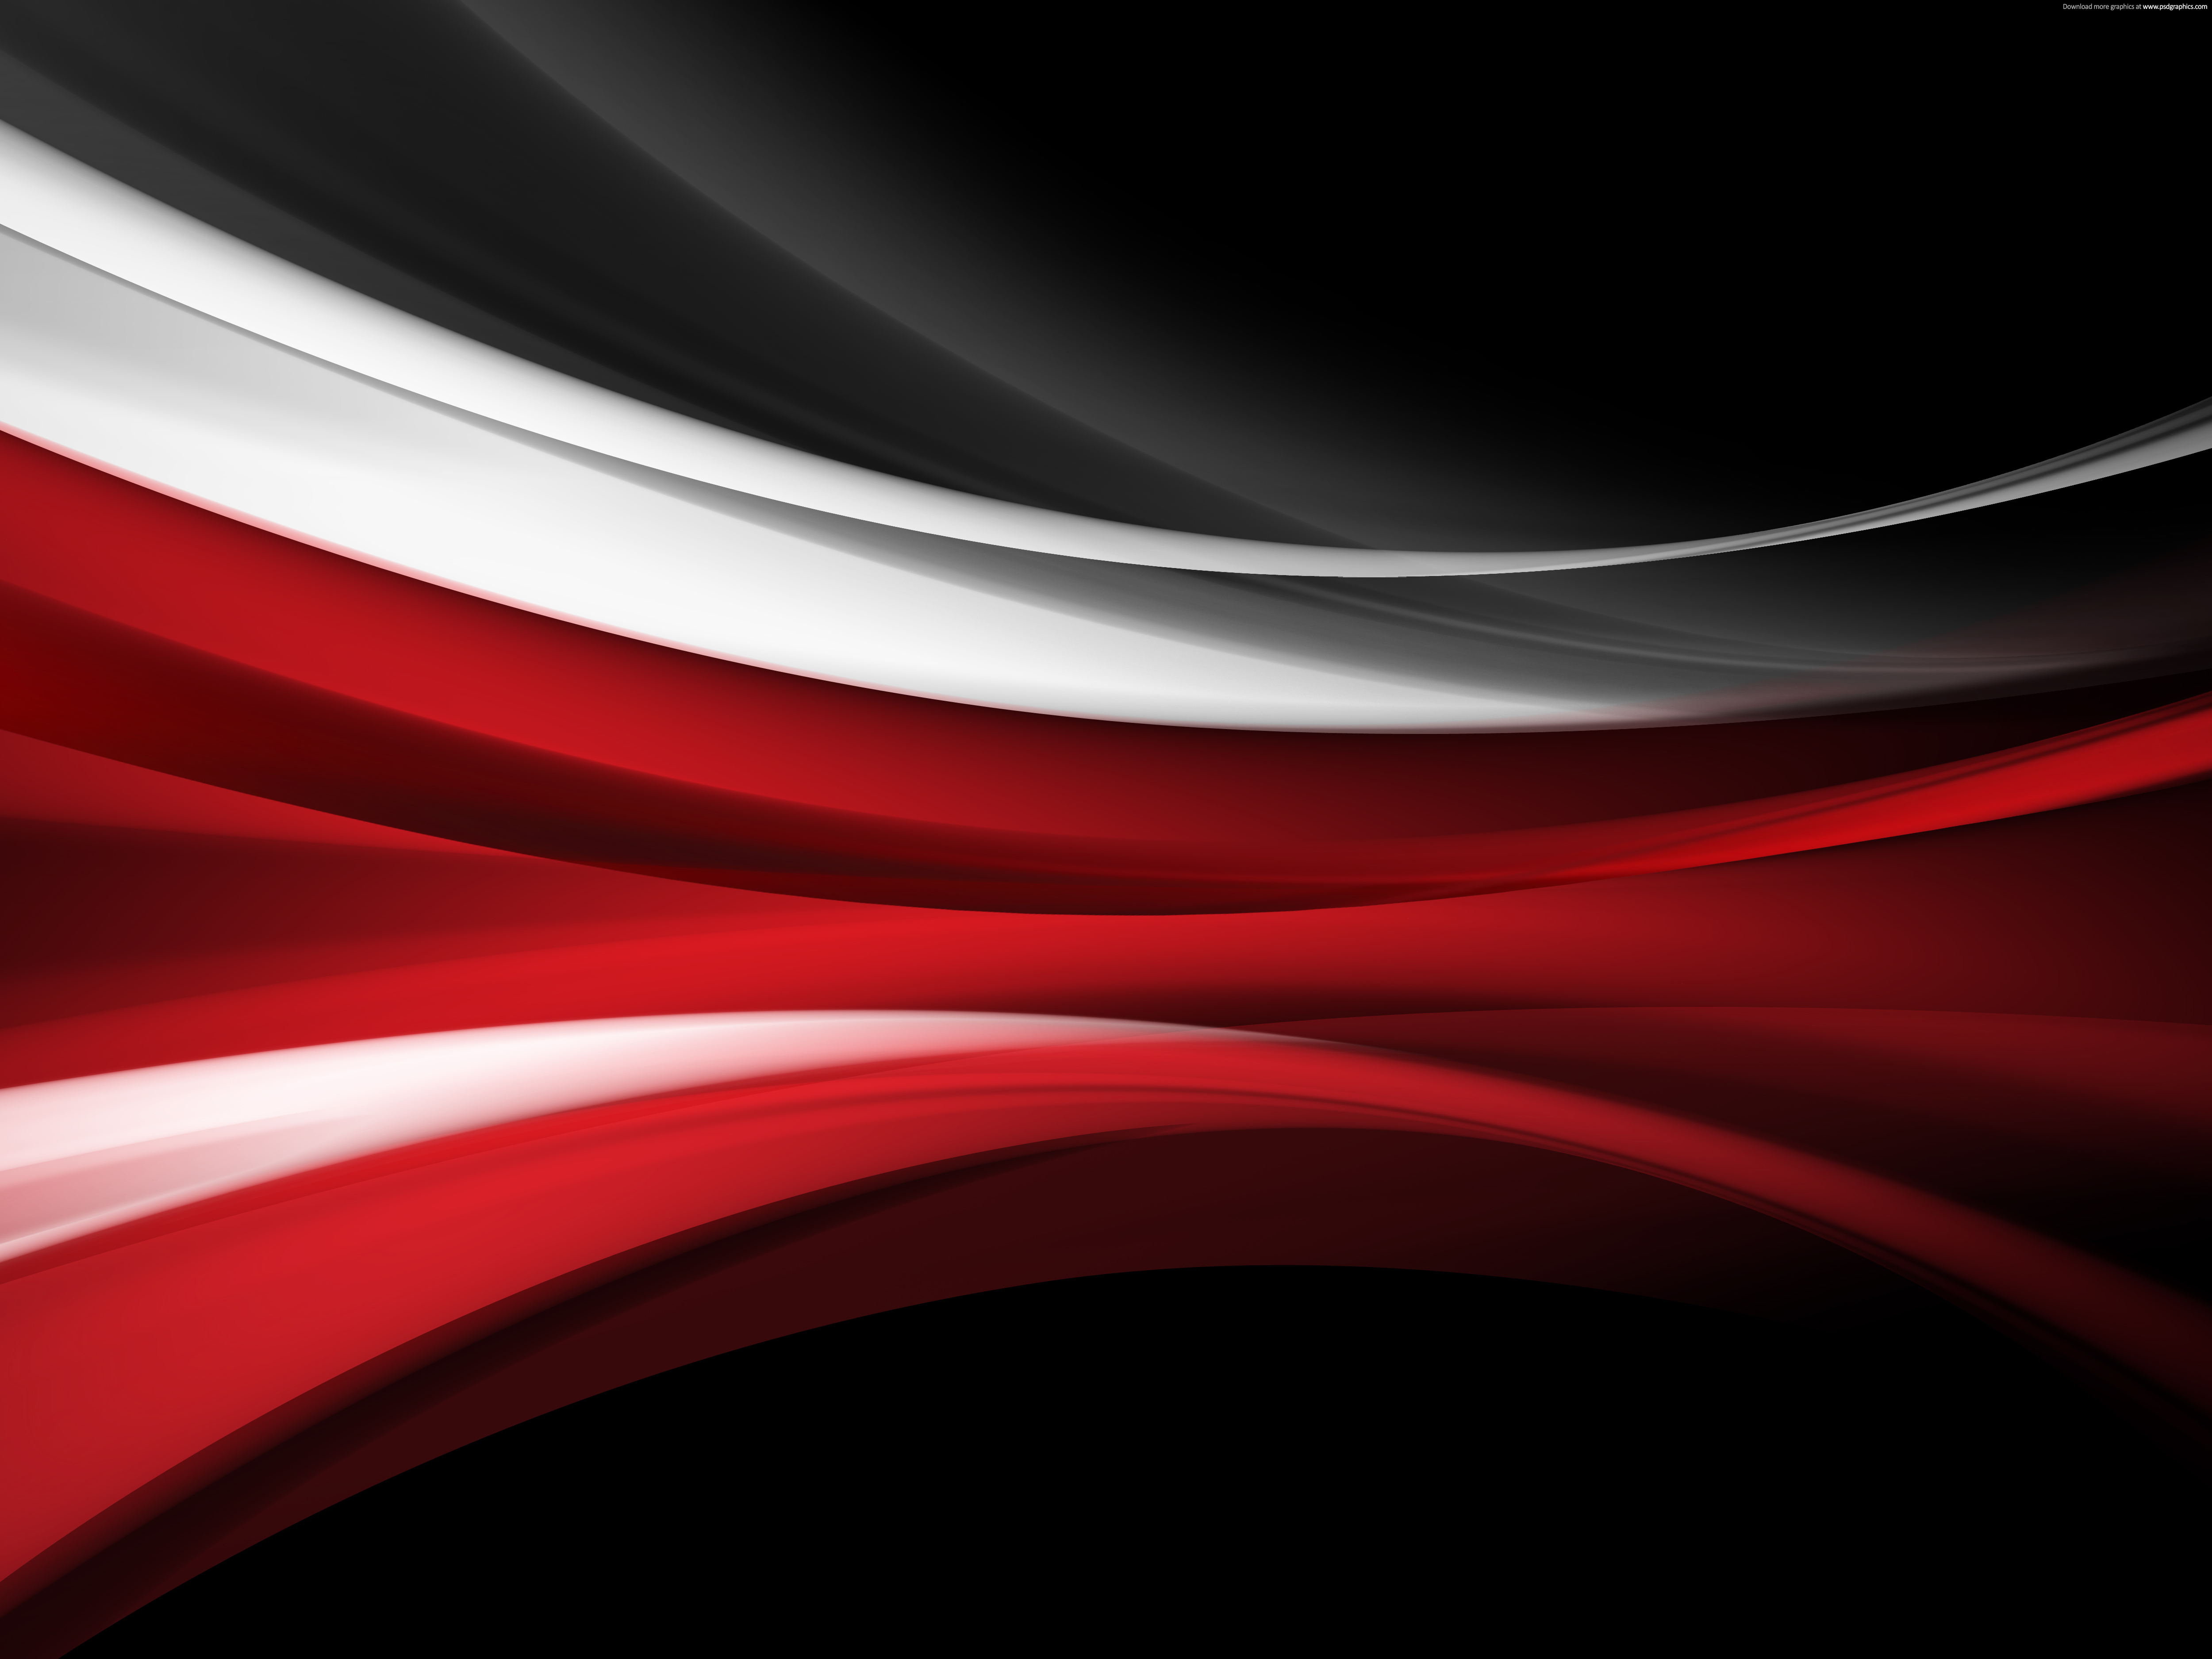 blur background beautiful abstract background red and yellow flowing 5000x3750